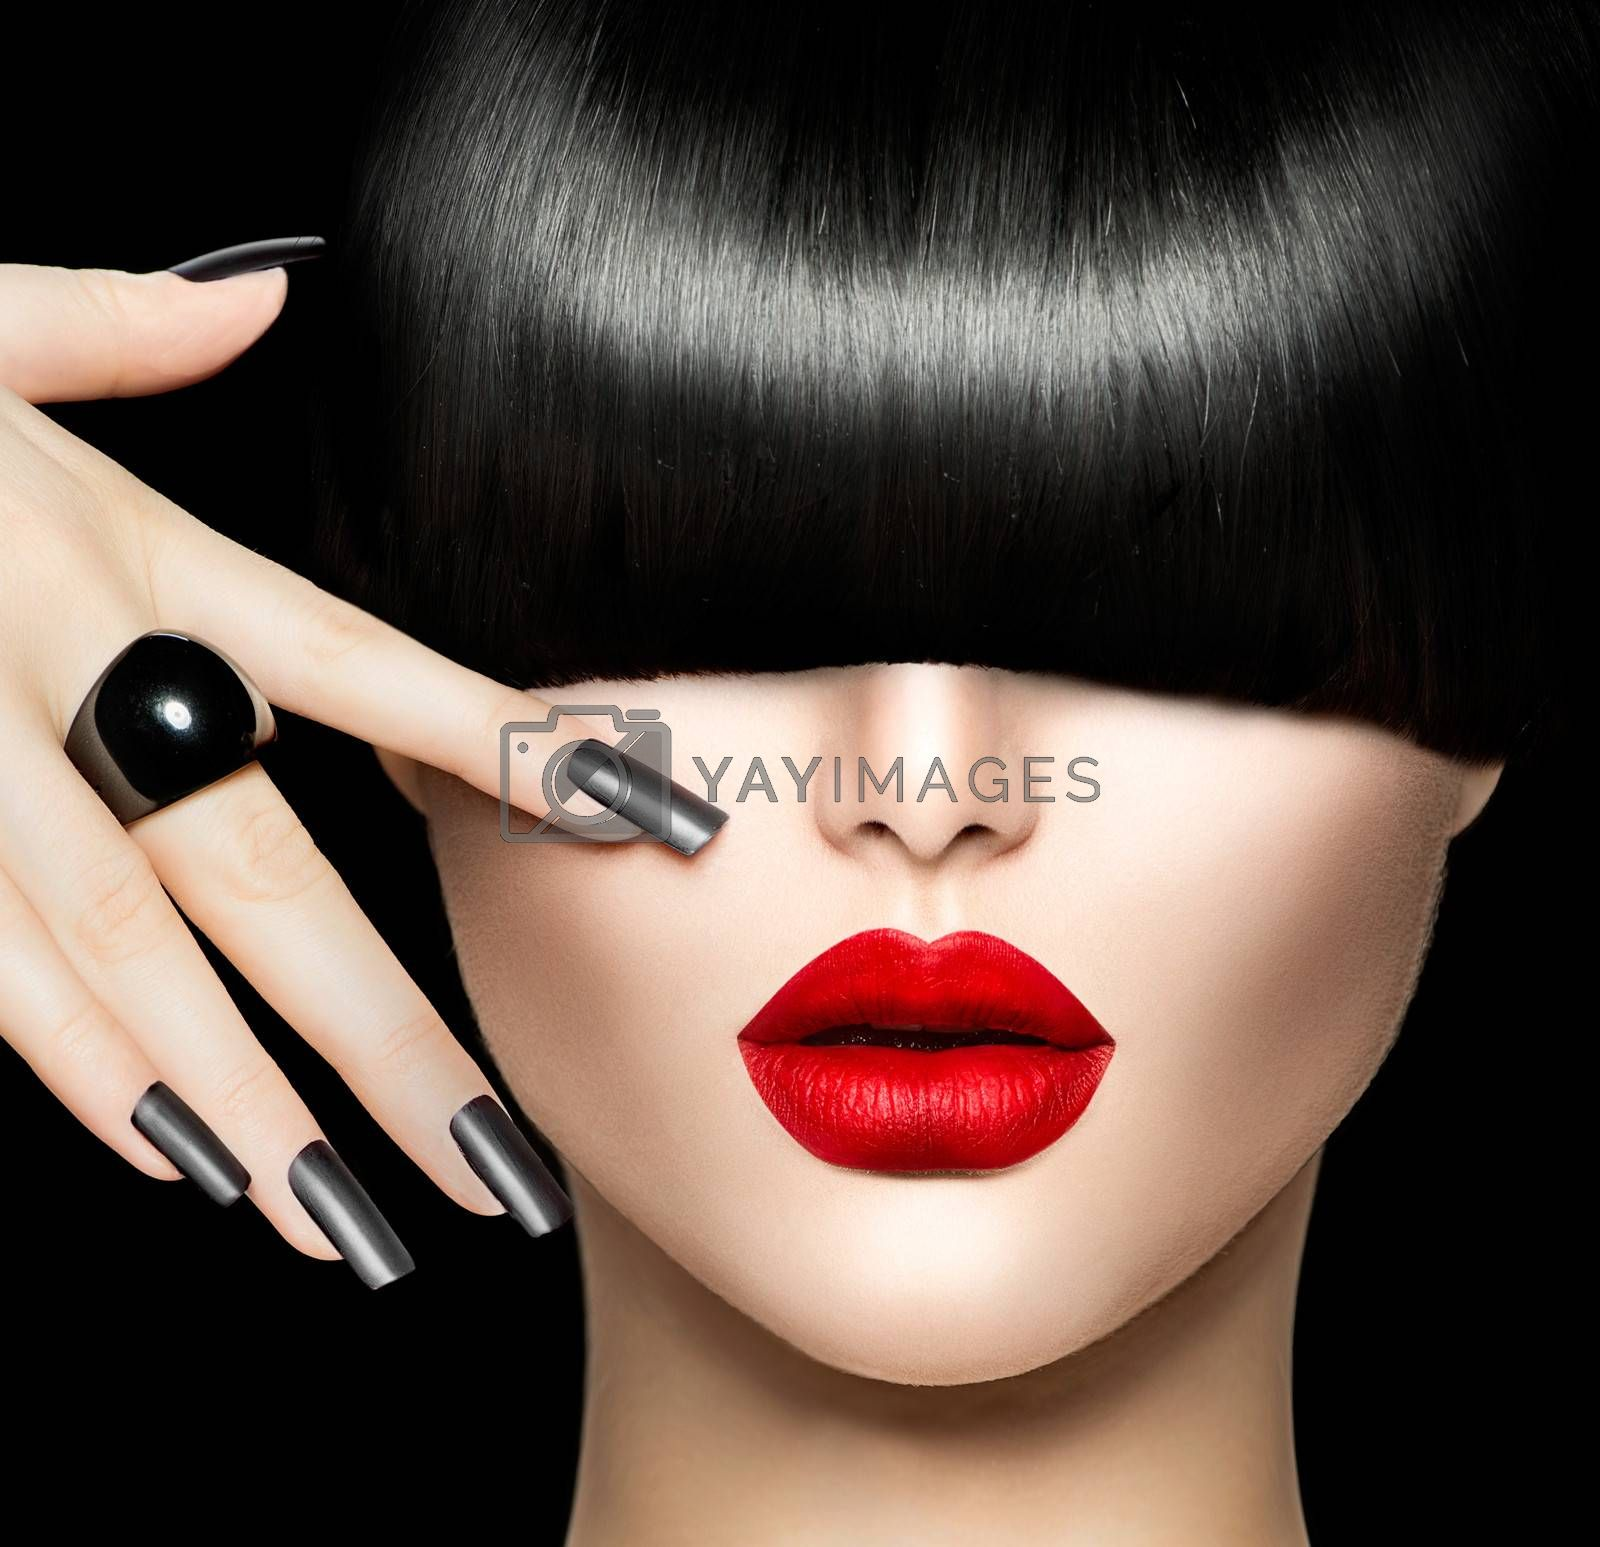 Beauty Girl Portrait with Trendy Hair style, Makeup and Manicure